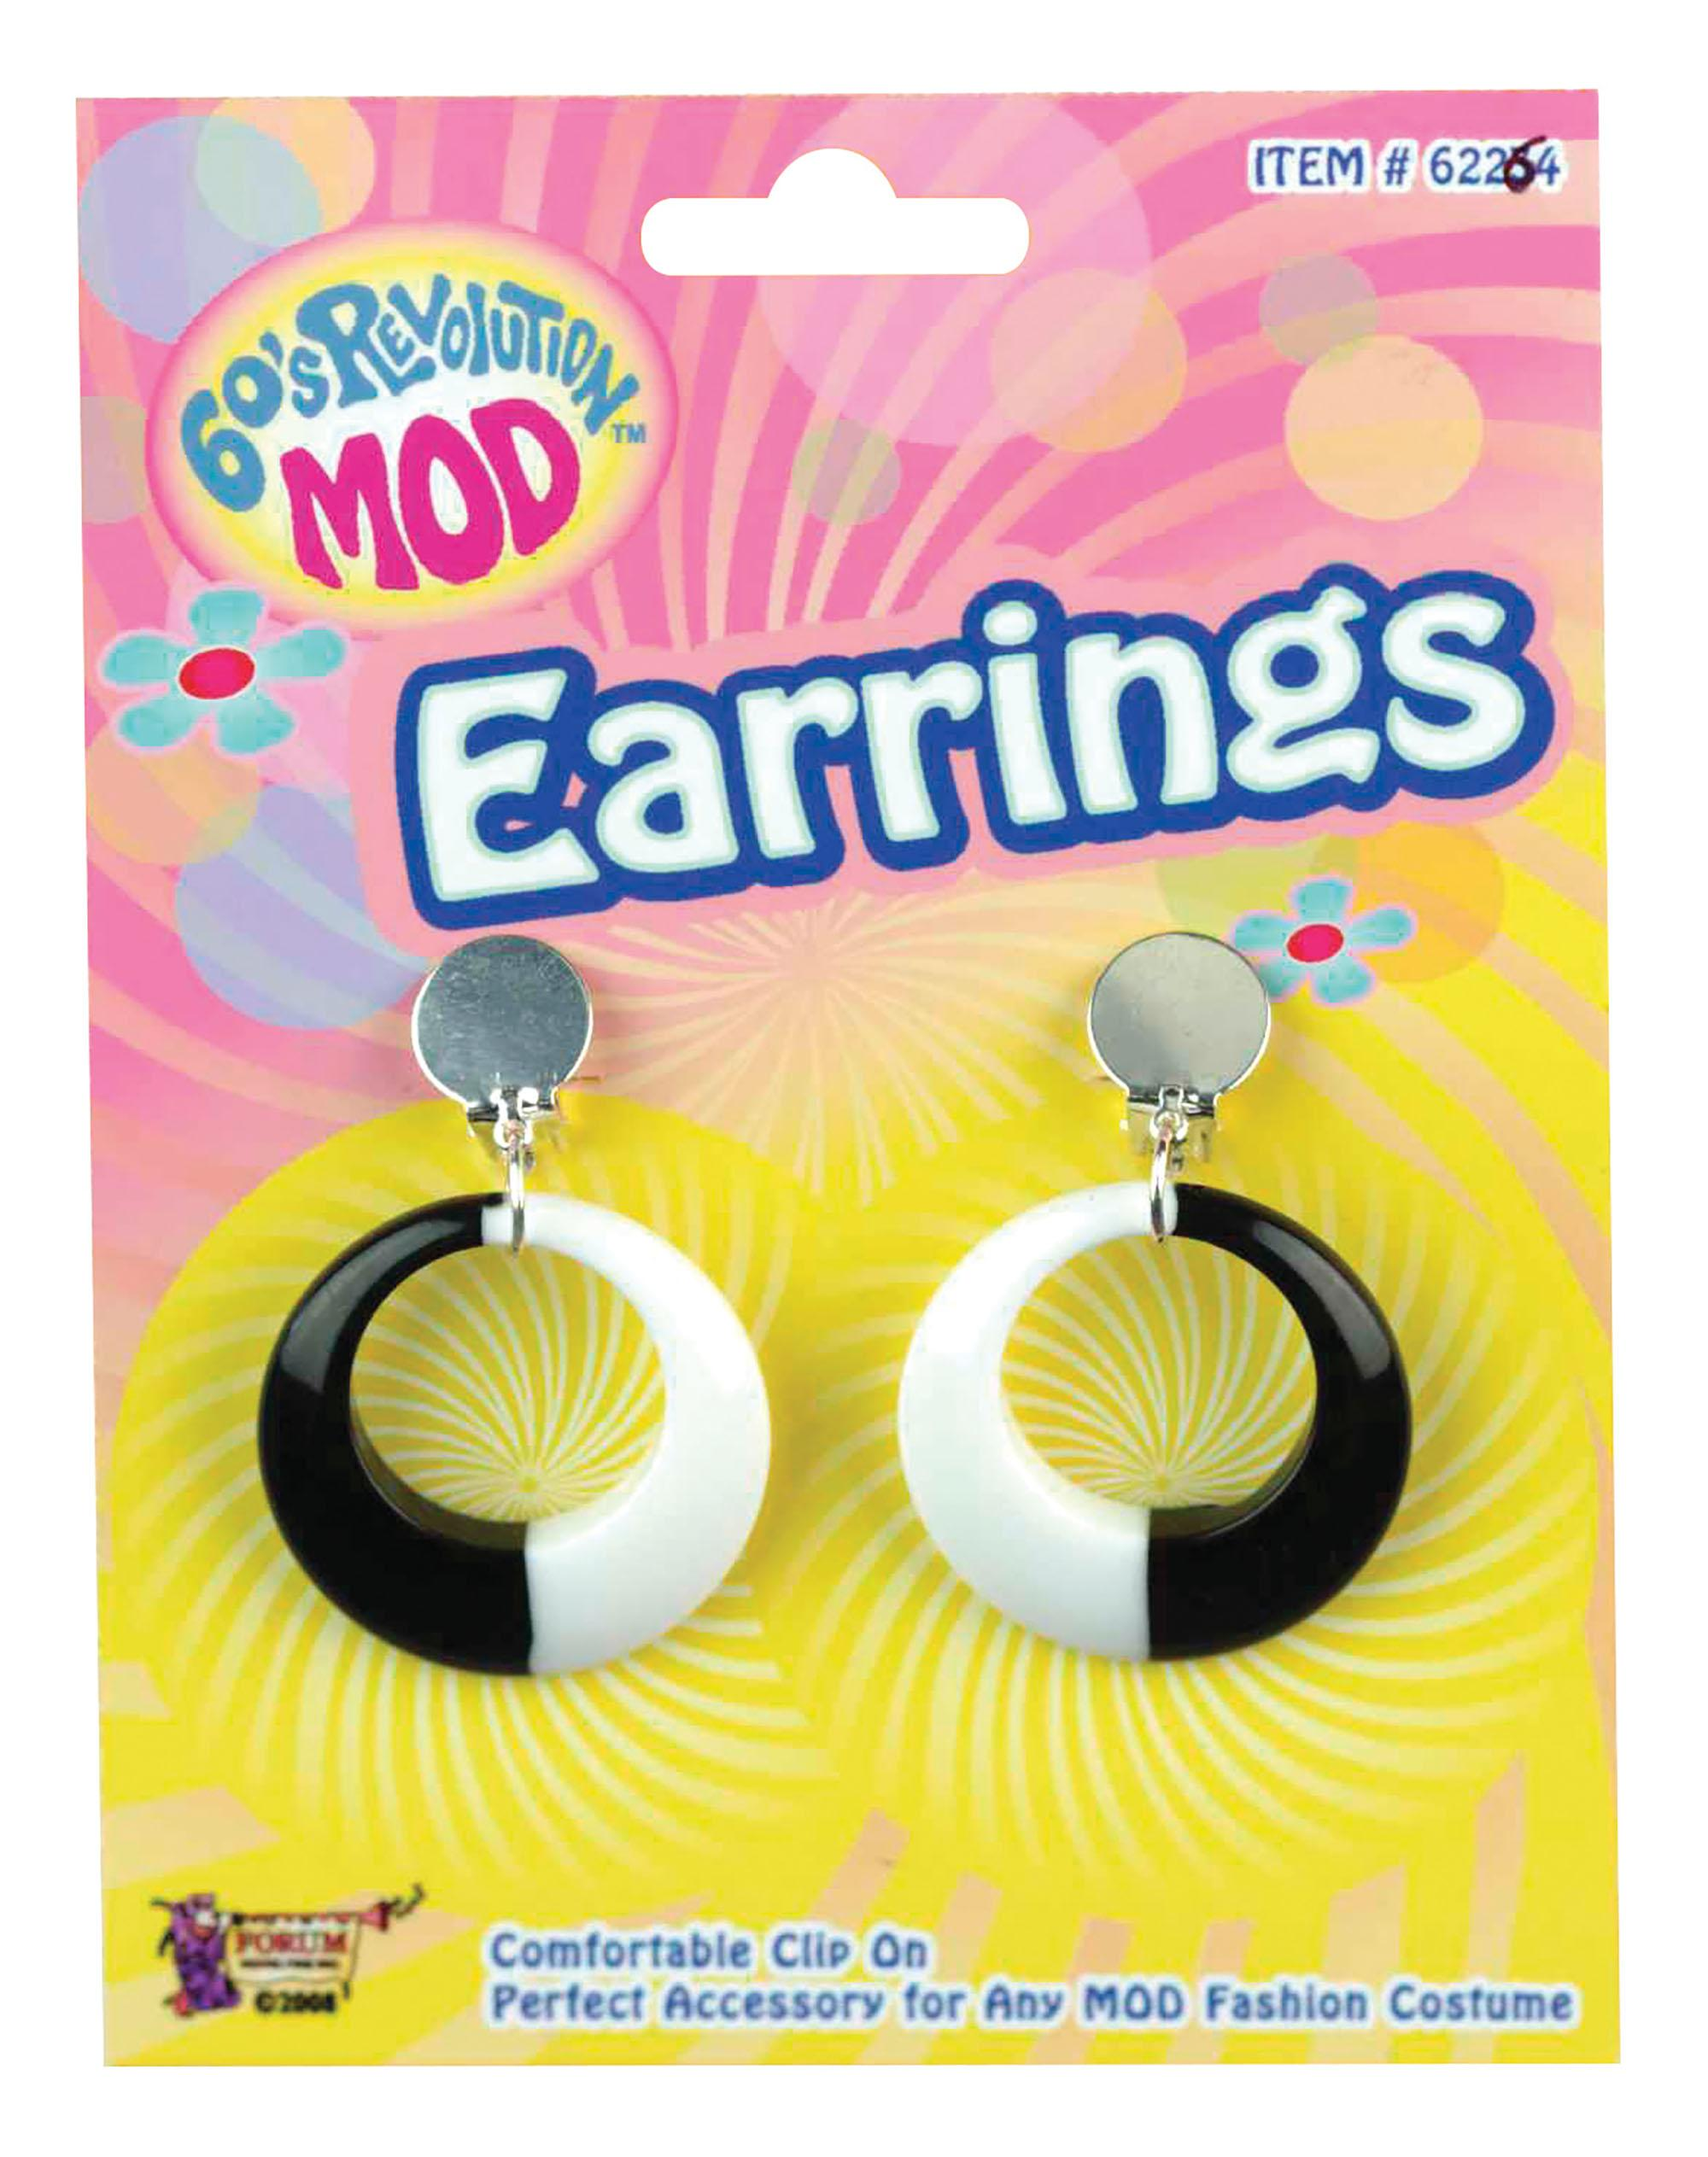 Mod Glitter Earrings Black & White